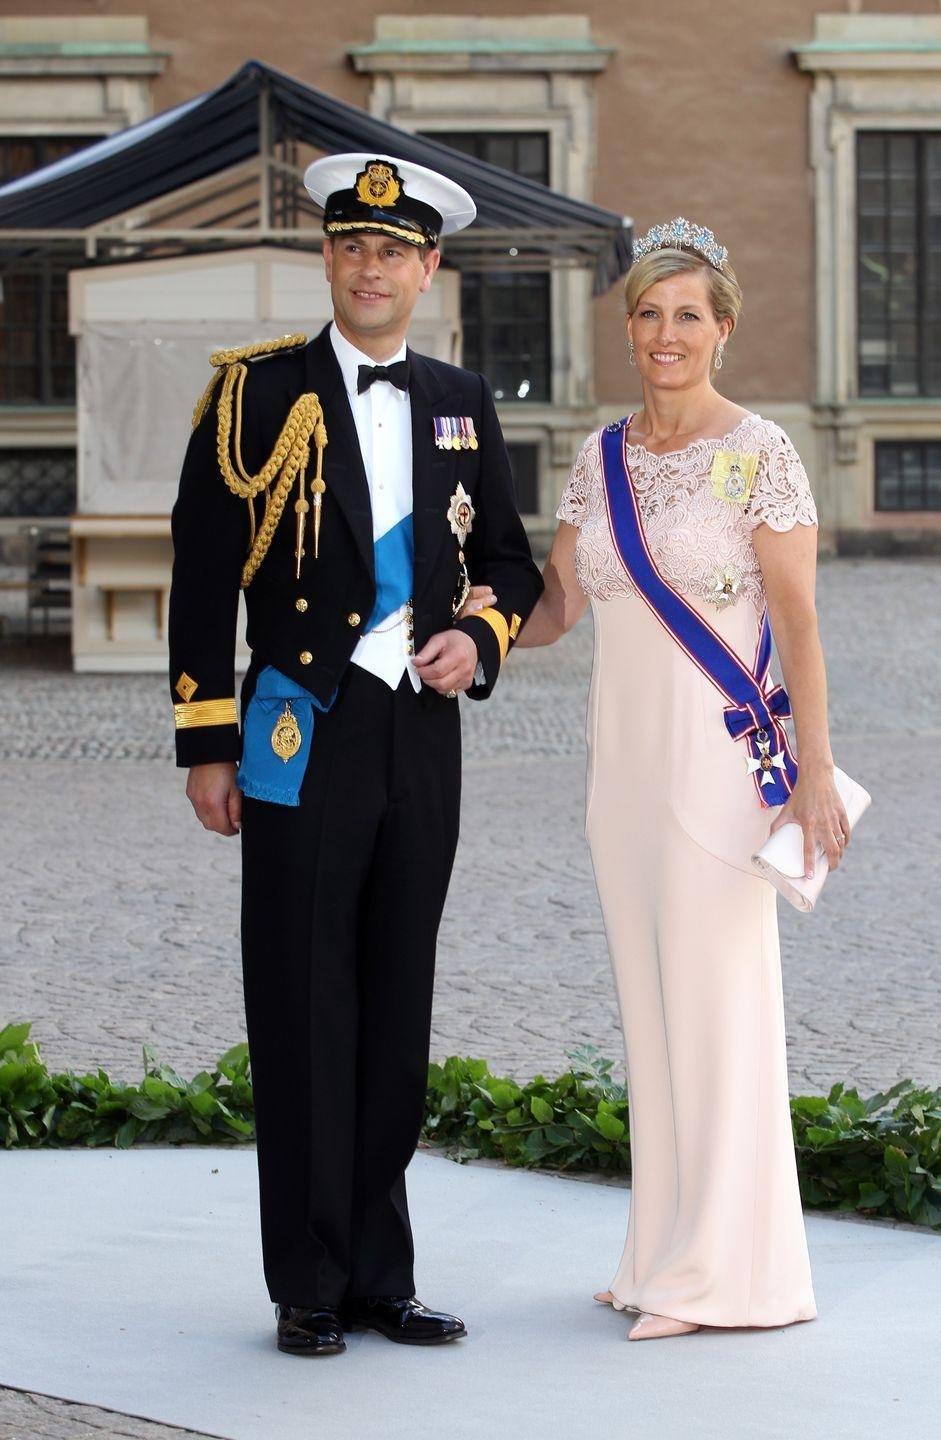 <p>In 2013, Prince Edward and Sophie, Countess of Wessex attended Princess Madeleine of Sweden's wedding to Christopher O'Neill. The Countess wore a pale pink gown with lace detailing on the top. </p>